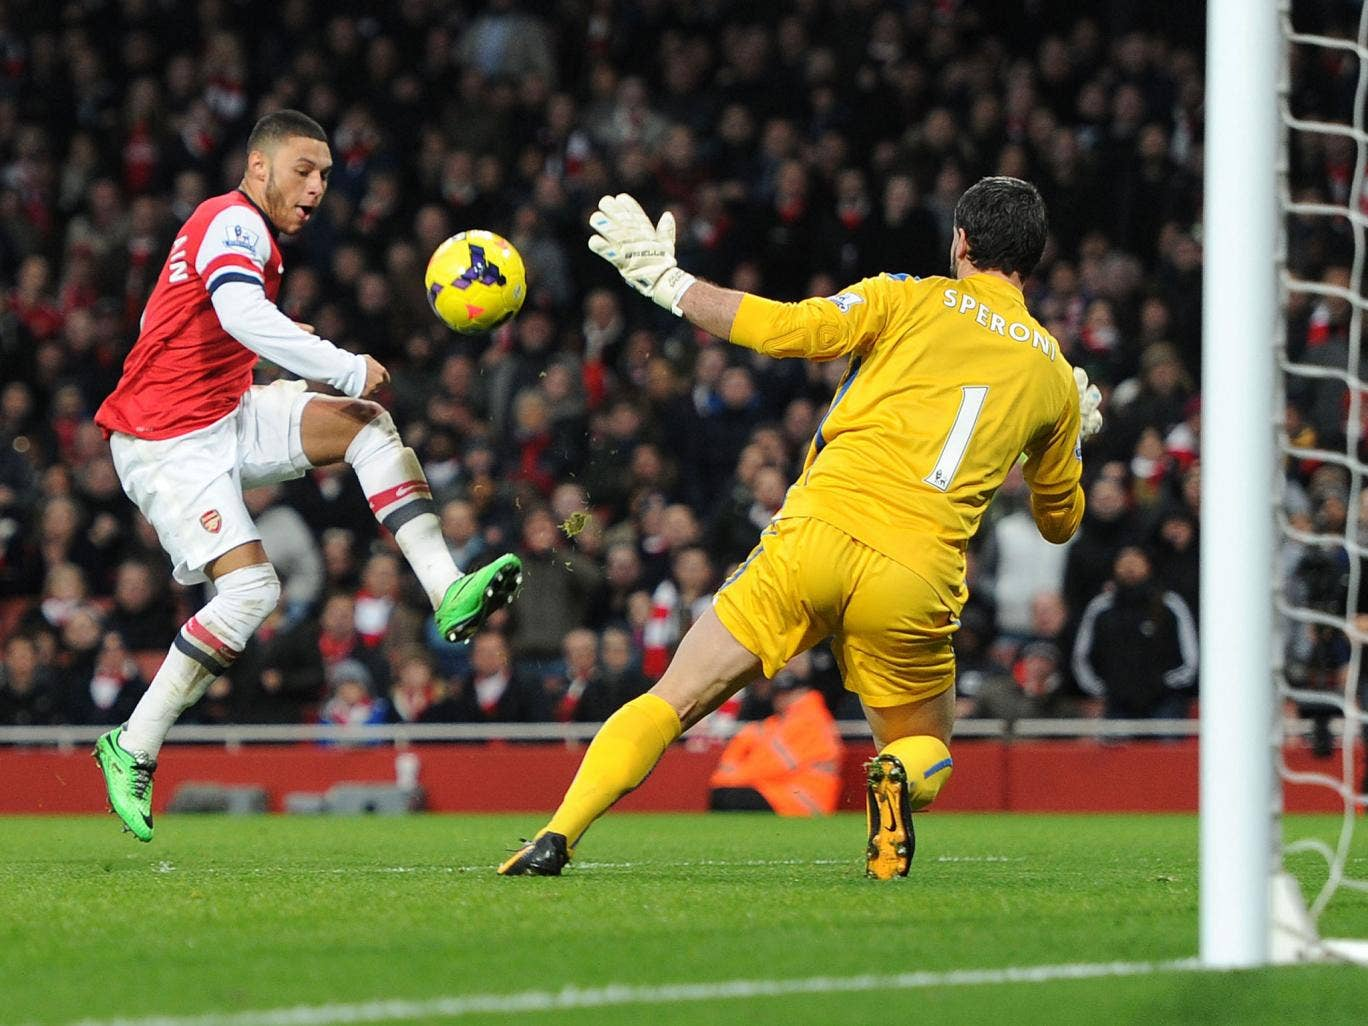 Alex Oxlade-Chamberlain opens the scoring for Arsenal in their 2-0 win over Crystal Palace